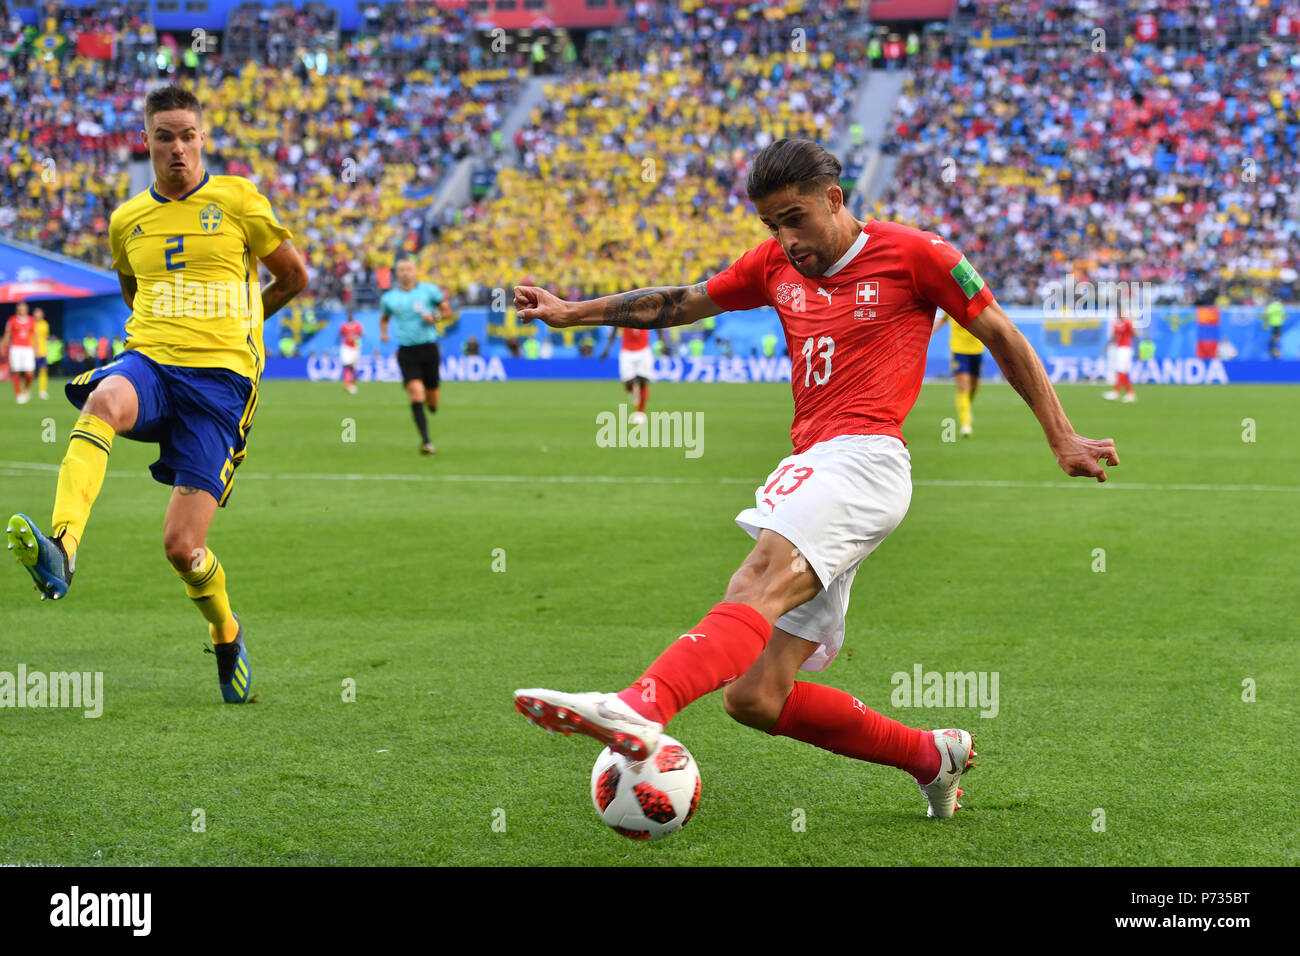 St. Petersburg, Russland. 03rd July, 2018. Ricardo RODRIGUEZ (SUI), action, duels versus Mikael FUNNY (SWE). Sweden (SWE) - Switzerland (SUI) 1-0, Round of 16, Round of 16, Game 55, on 07/03/2018 in Saint Petersburg, Arena Saint Petersburg. Football World Cup 2018 in Russia from 14.06. - 15.07.2018. | usage worldwide Credit: dpa/Alamy Live News Stock Photo